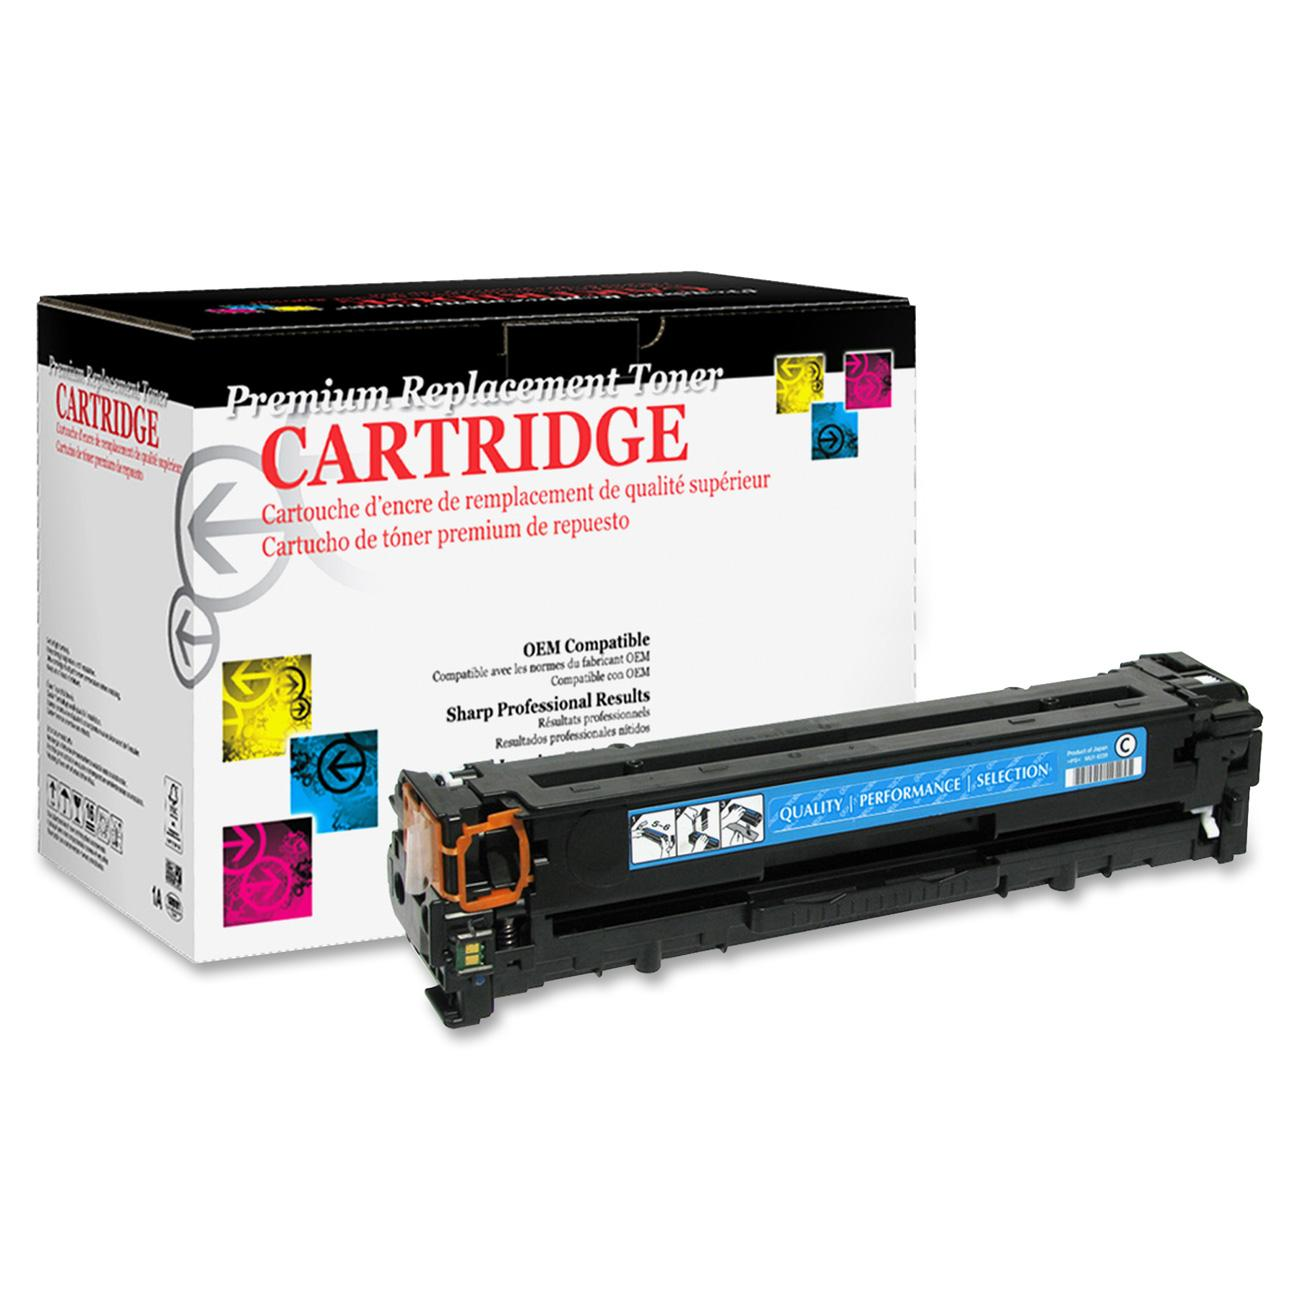 West Point Remanufactured Toner Cartridge - Alternative for HP 125A (CB541A), 1 Each (Quantity)